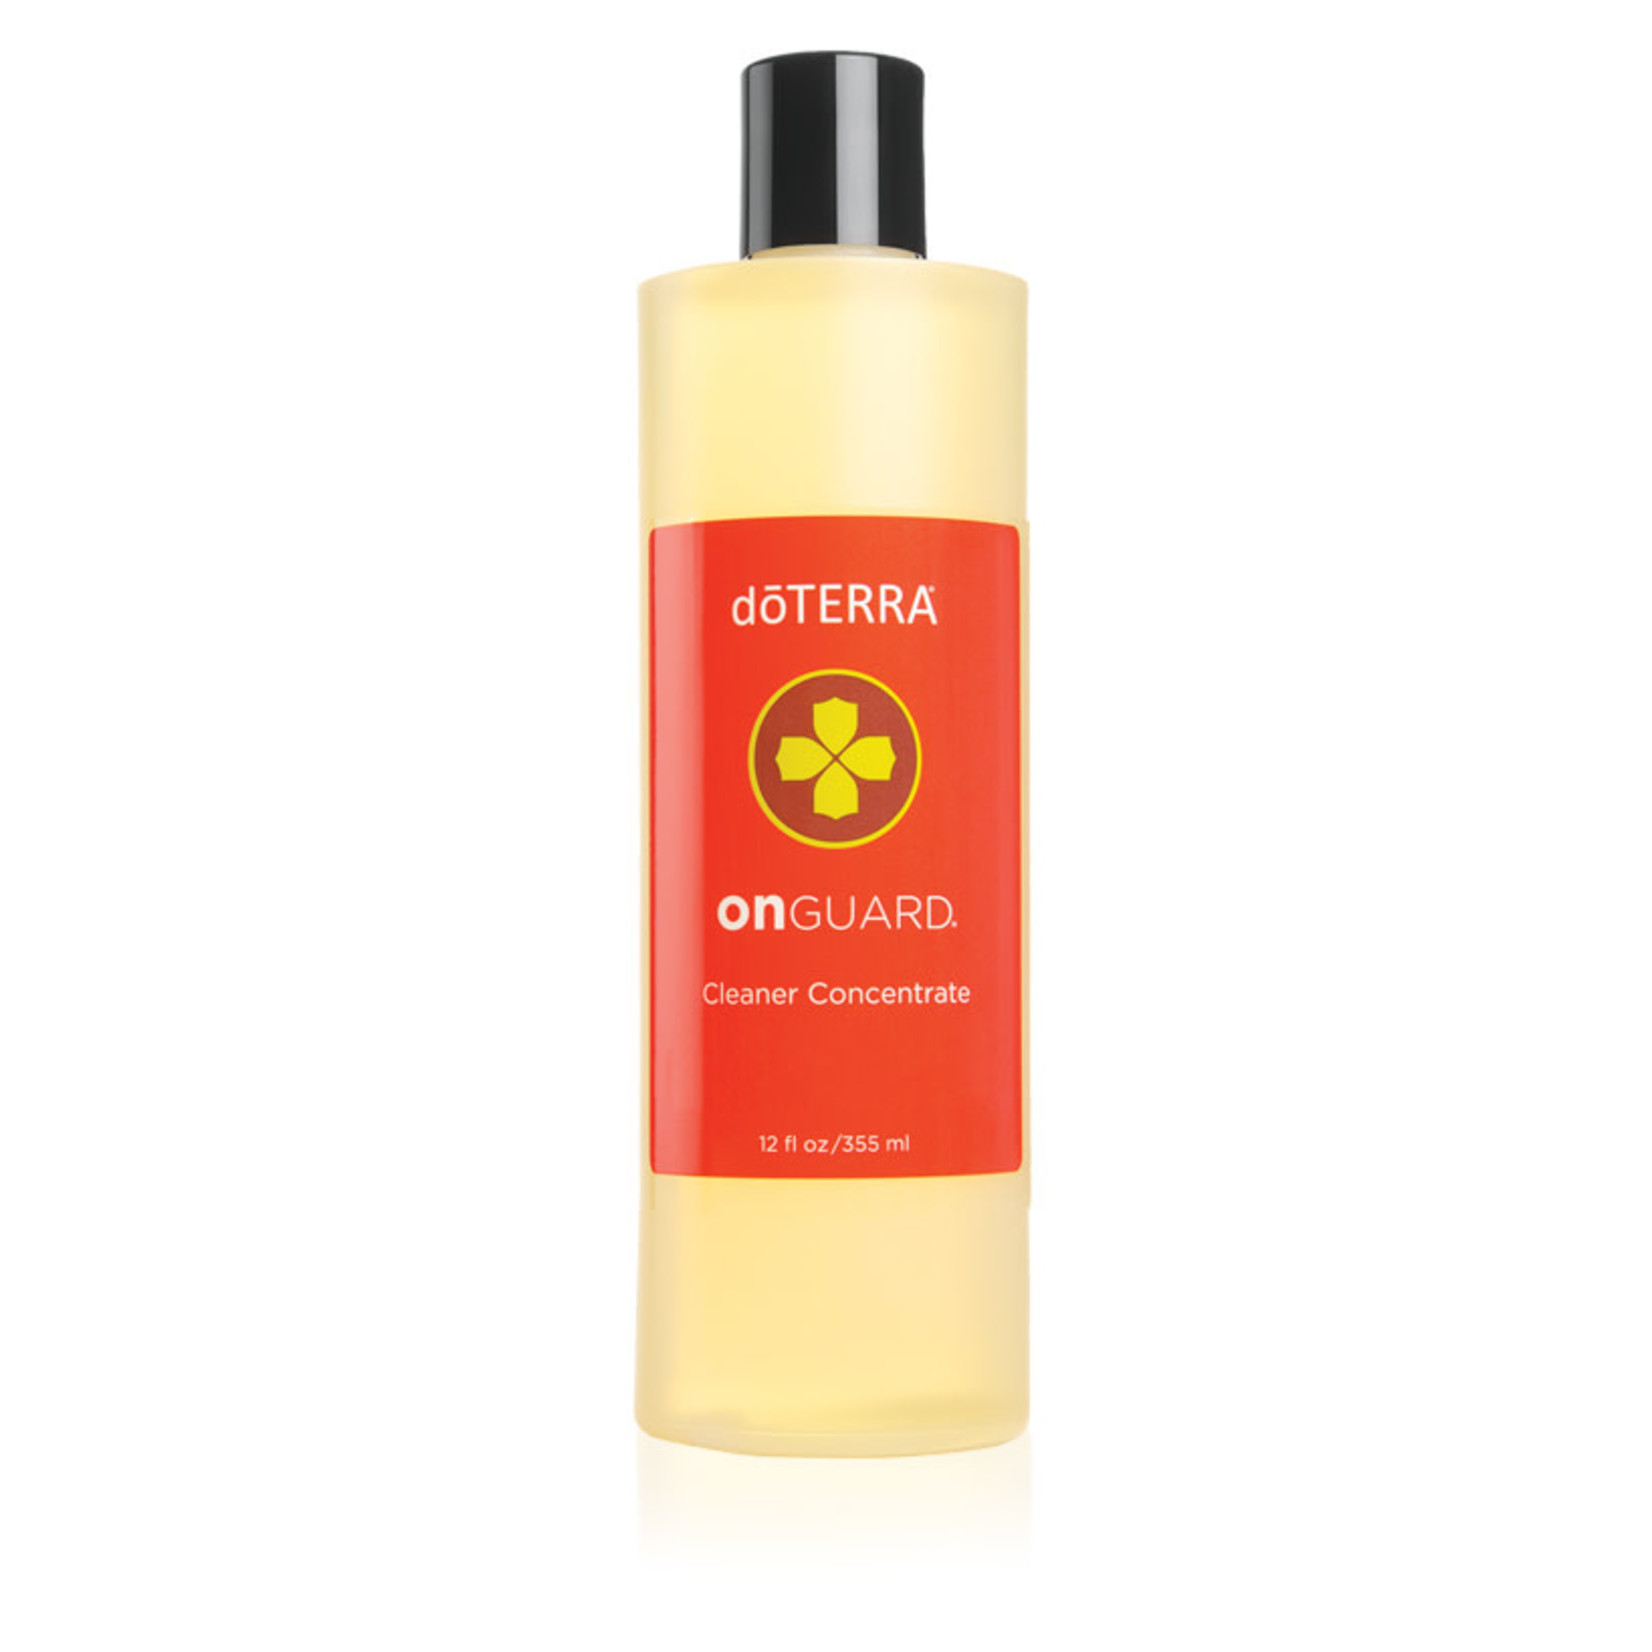 doTERRA doTERRA On Guard Cleaner Concentrate 12oz